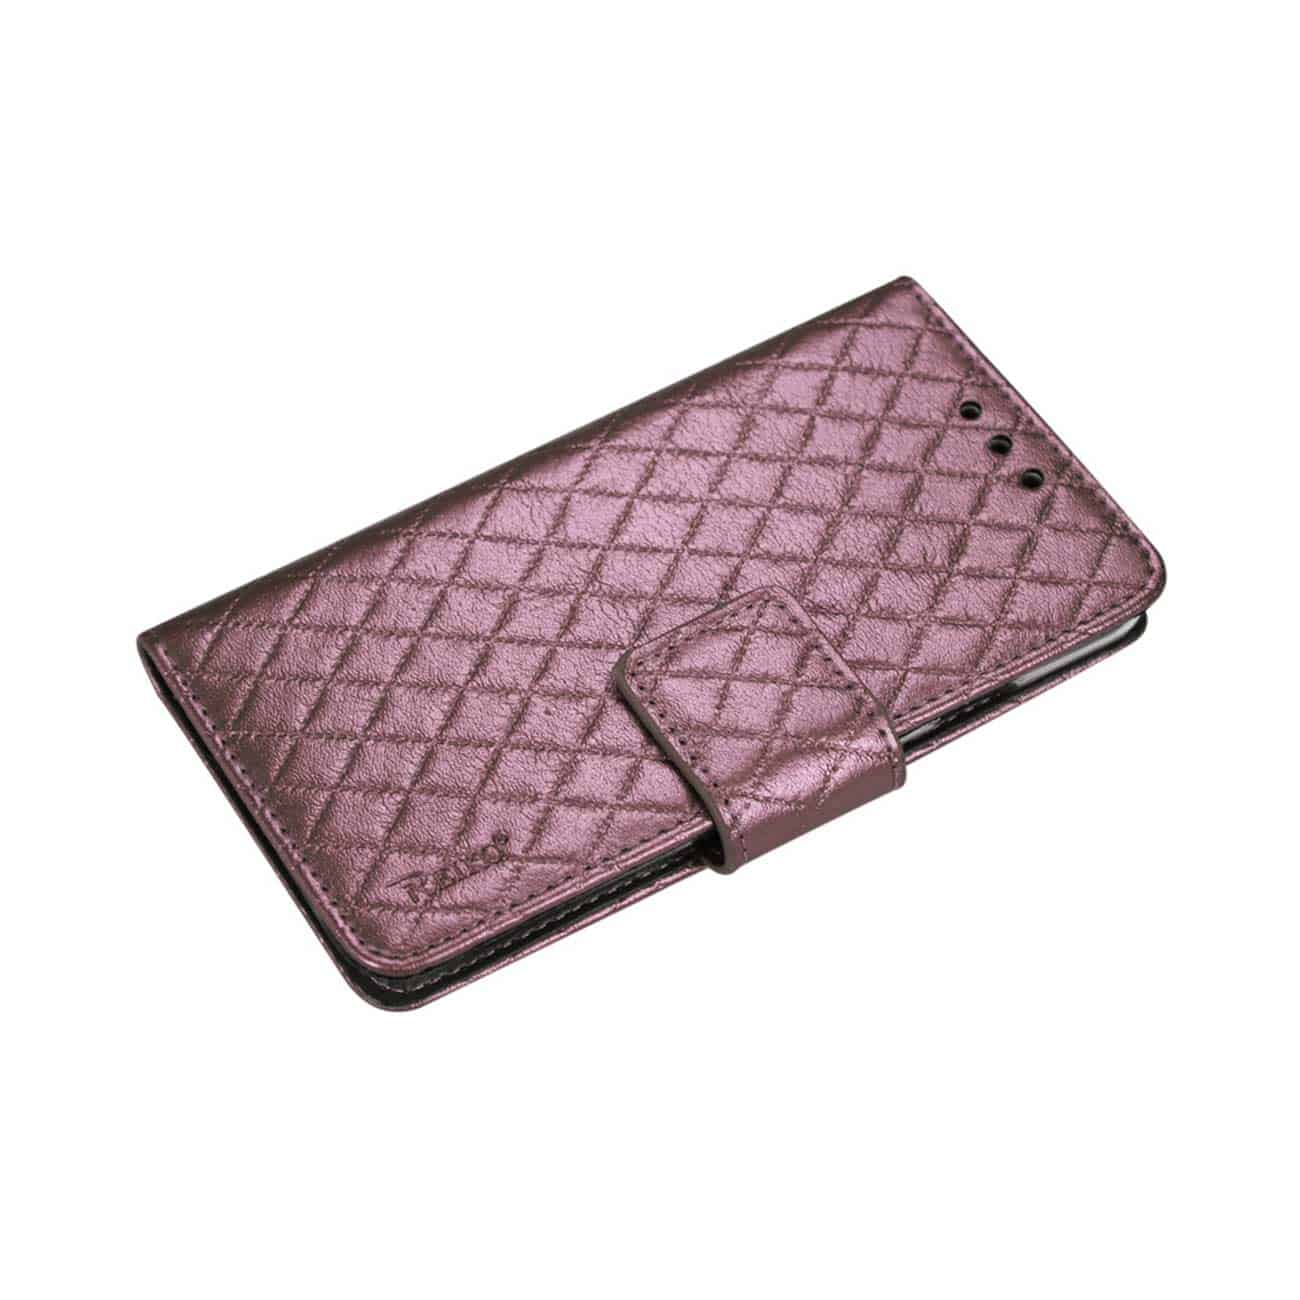 SAMSUNG GALAXY NOTE 4 RHOMBUS WALLET CASE IN PINK